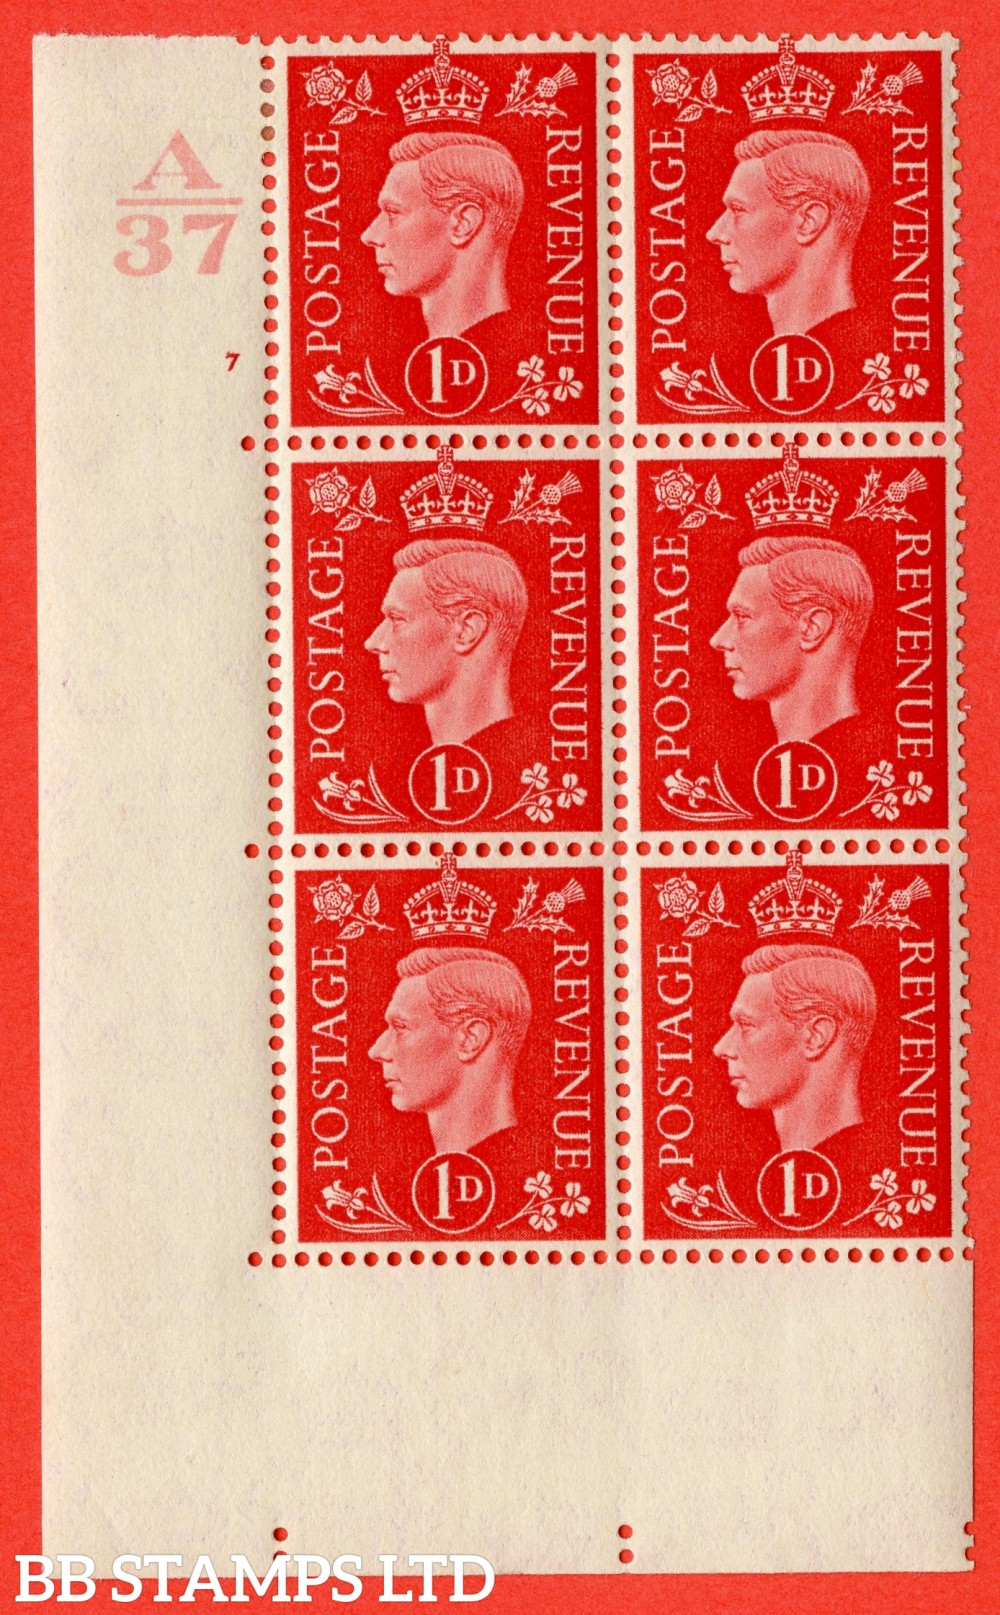 "SG. 463. Q4. 1d Scarlet. A very fine lightly mounted mint "" Control A37 cylinder 7 no dot "" block of 6 with perf type 5 E/I without marginal rule."